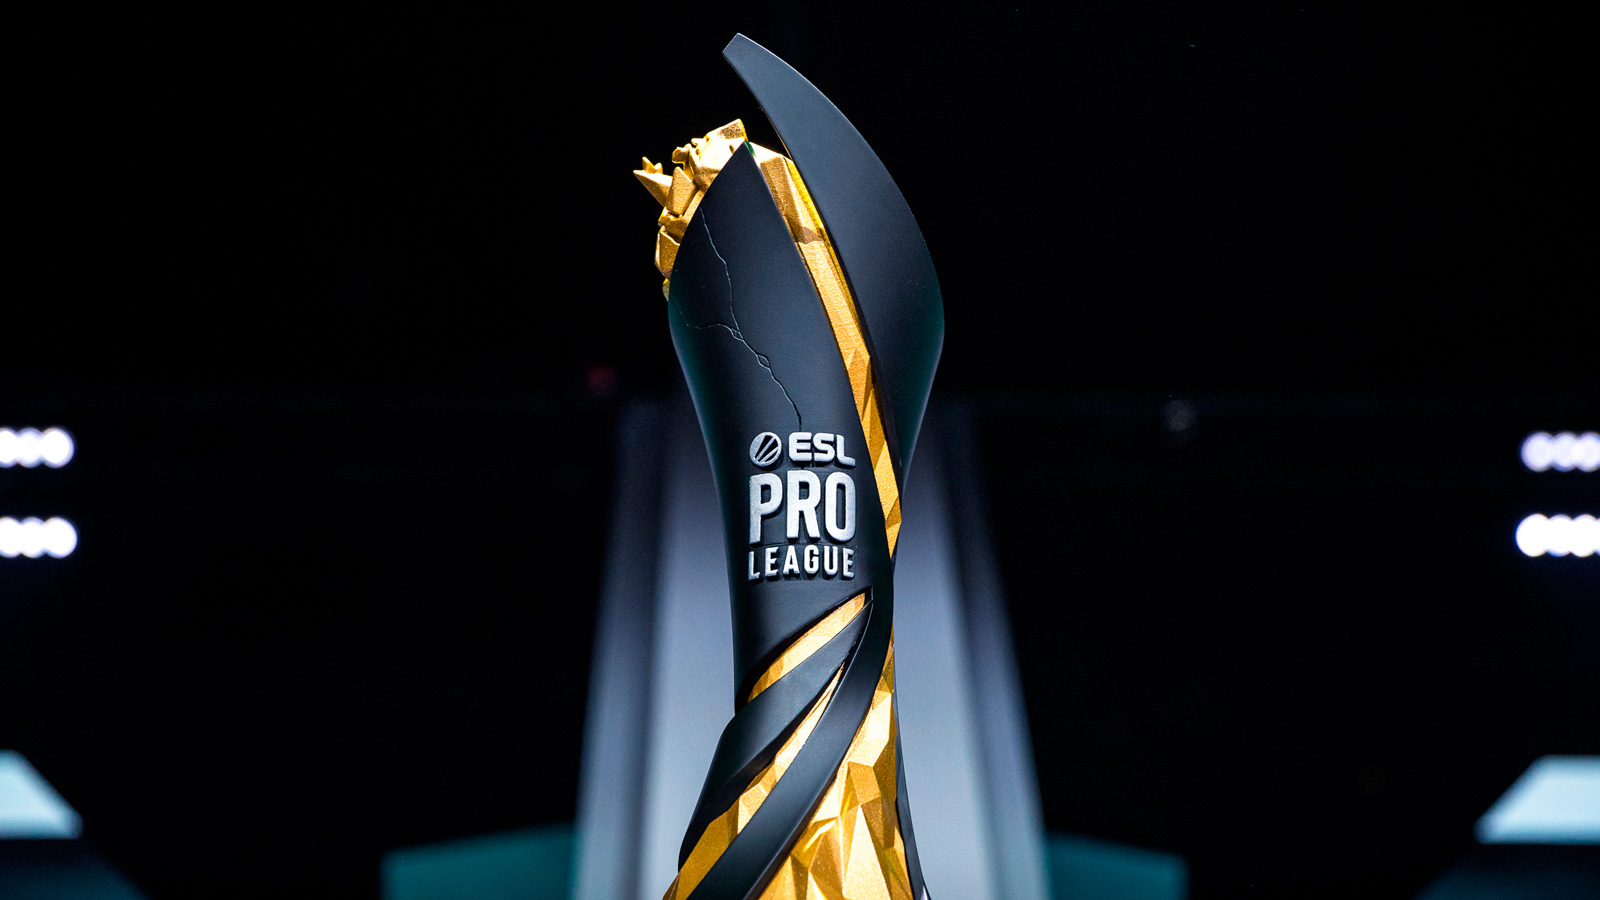 G2, NiP, and ENCE share the lead heading into the final day of Group B of the ESL Pro League